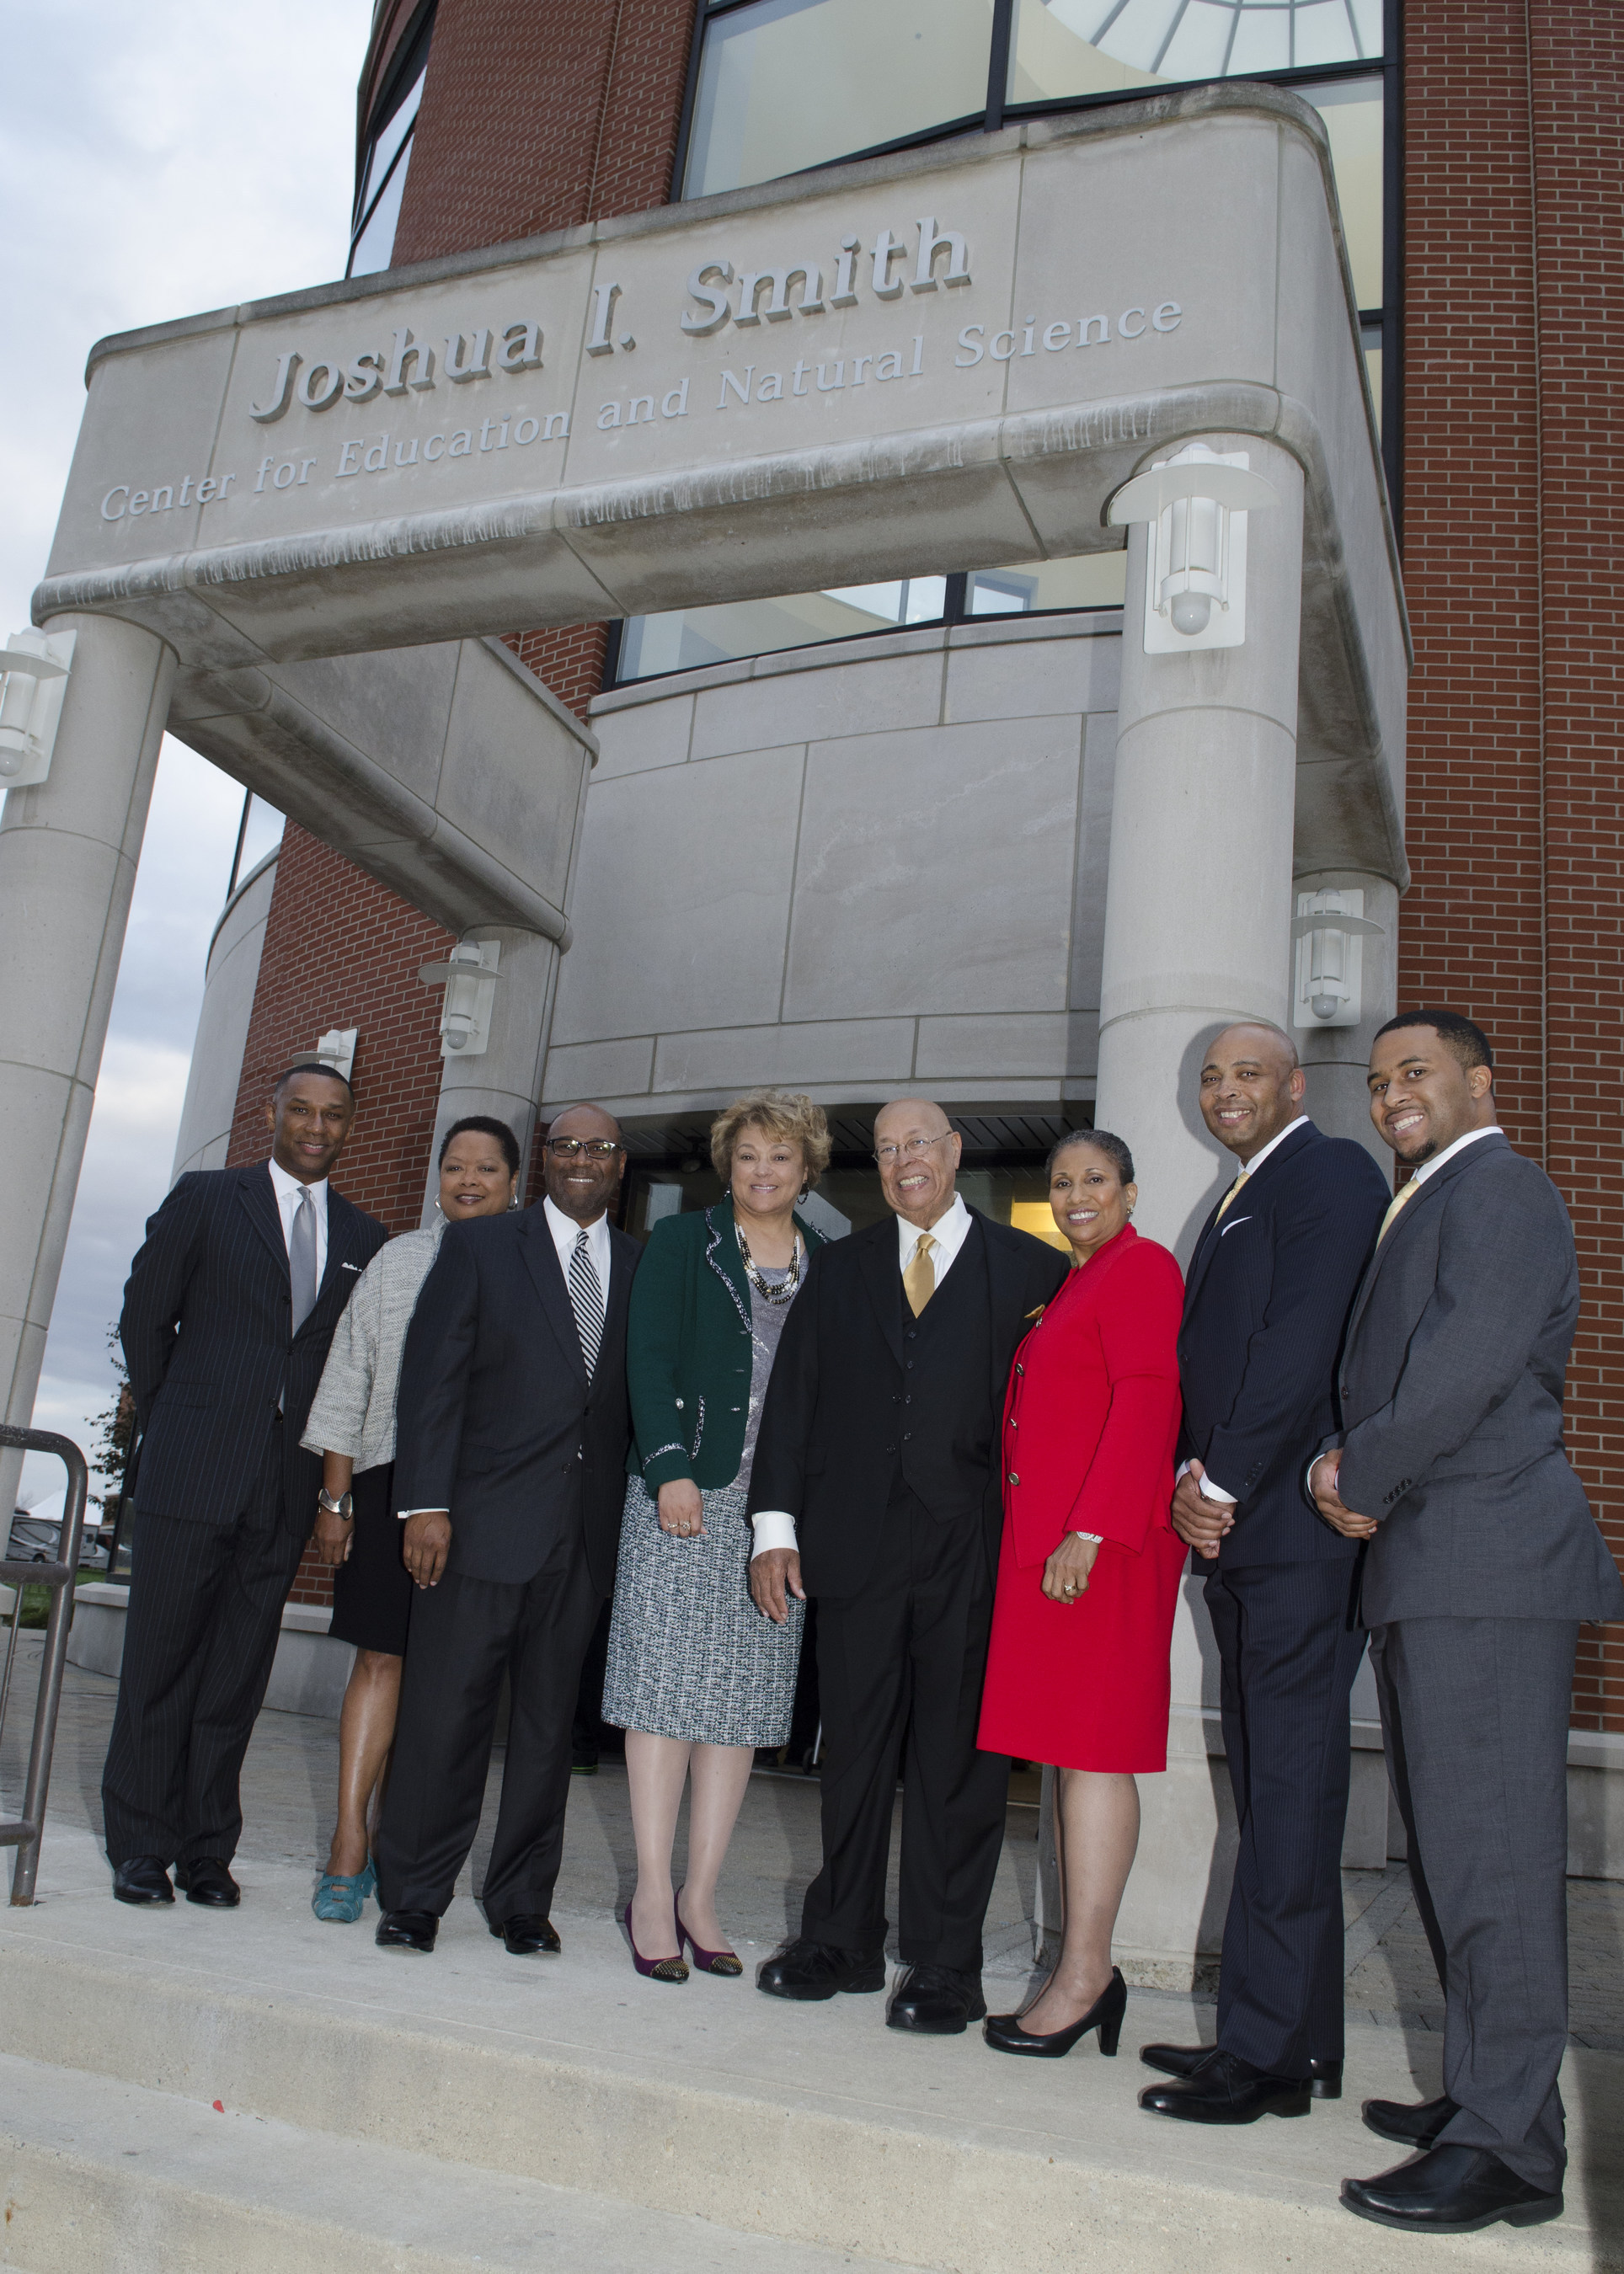 Businessman and philanthropist Dr. Joshua I. Smith is joined at the building renaming ceremony by Central State University president Dr. Cynthia Jackson-Hammond, his wife Reverend Jacqueline Smith, Esquire and executives from Caterpillar, FedEx and Disney.